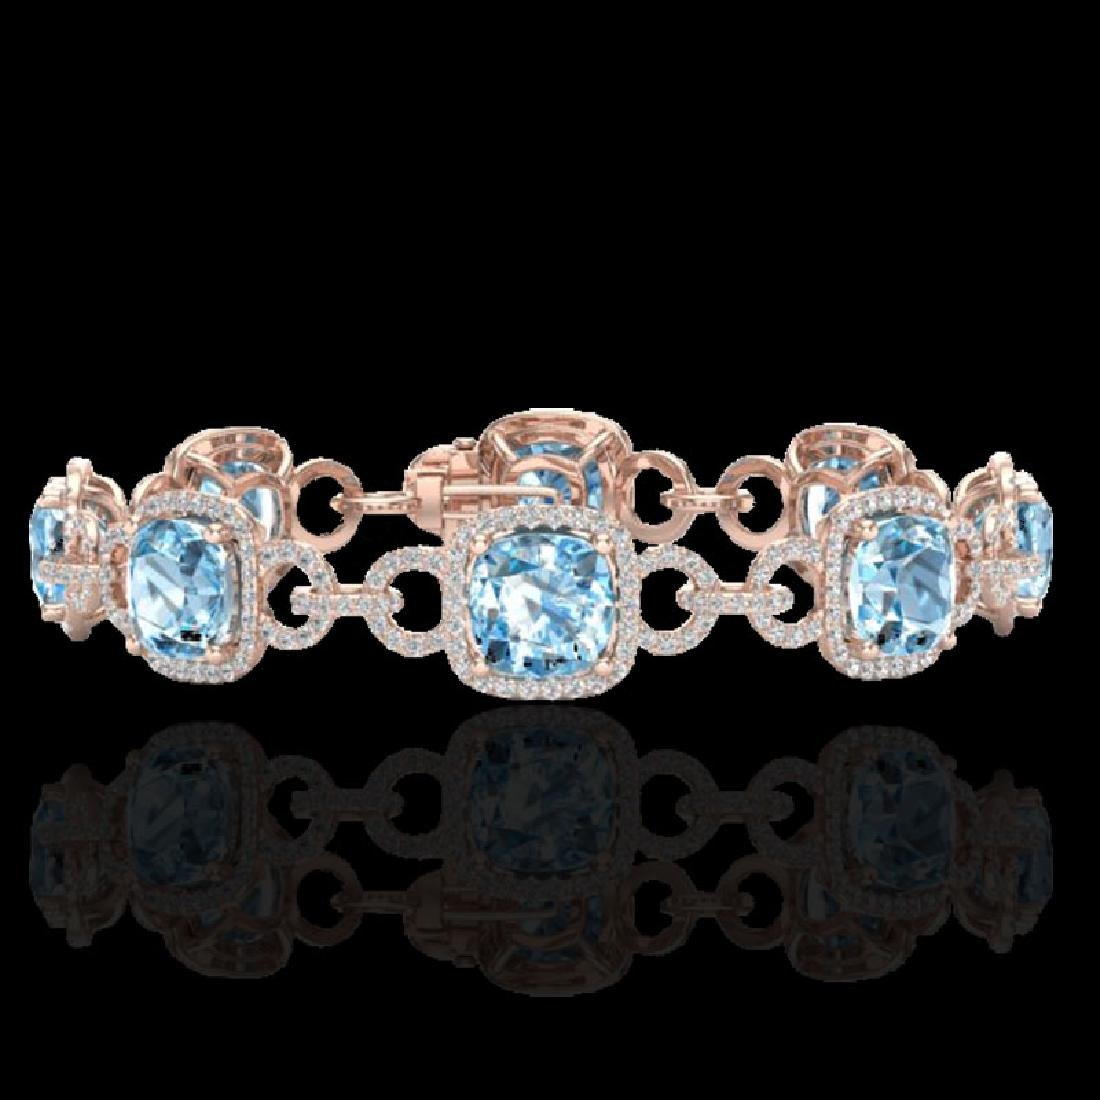 30 CTW Topaz & Micro VS/SI Diamond Bracelet 14K Rose